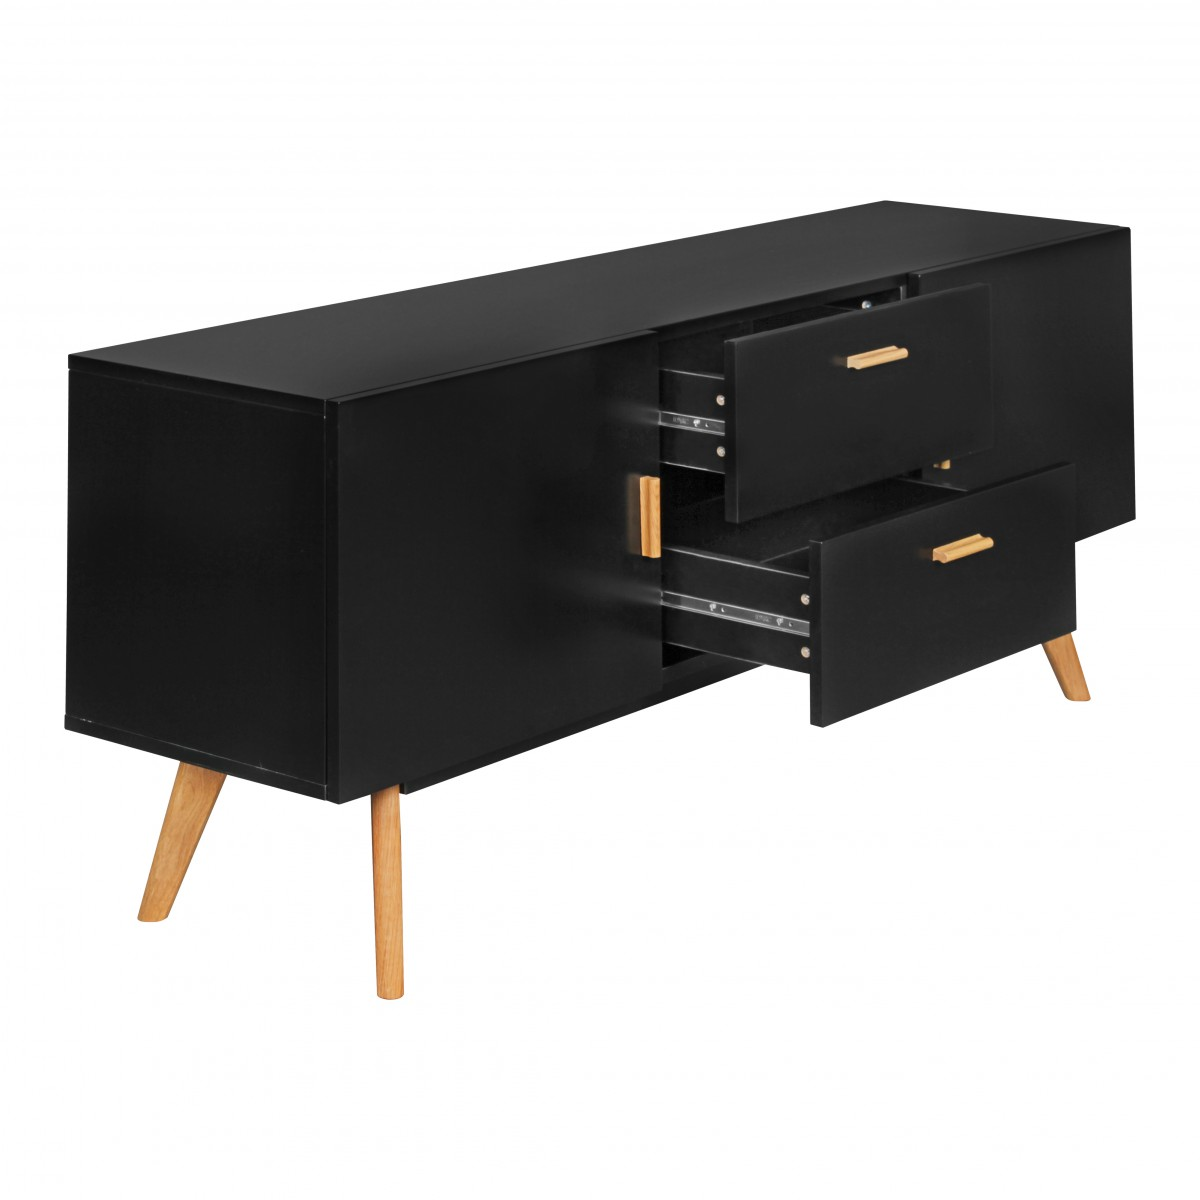 wohnling retro sideboard scanio mdf holz schwarz 2. Black Bedroom Furniture Sets. Home Design Ideas